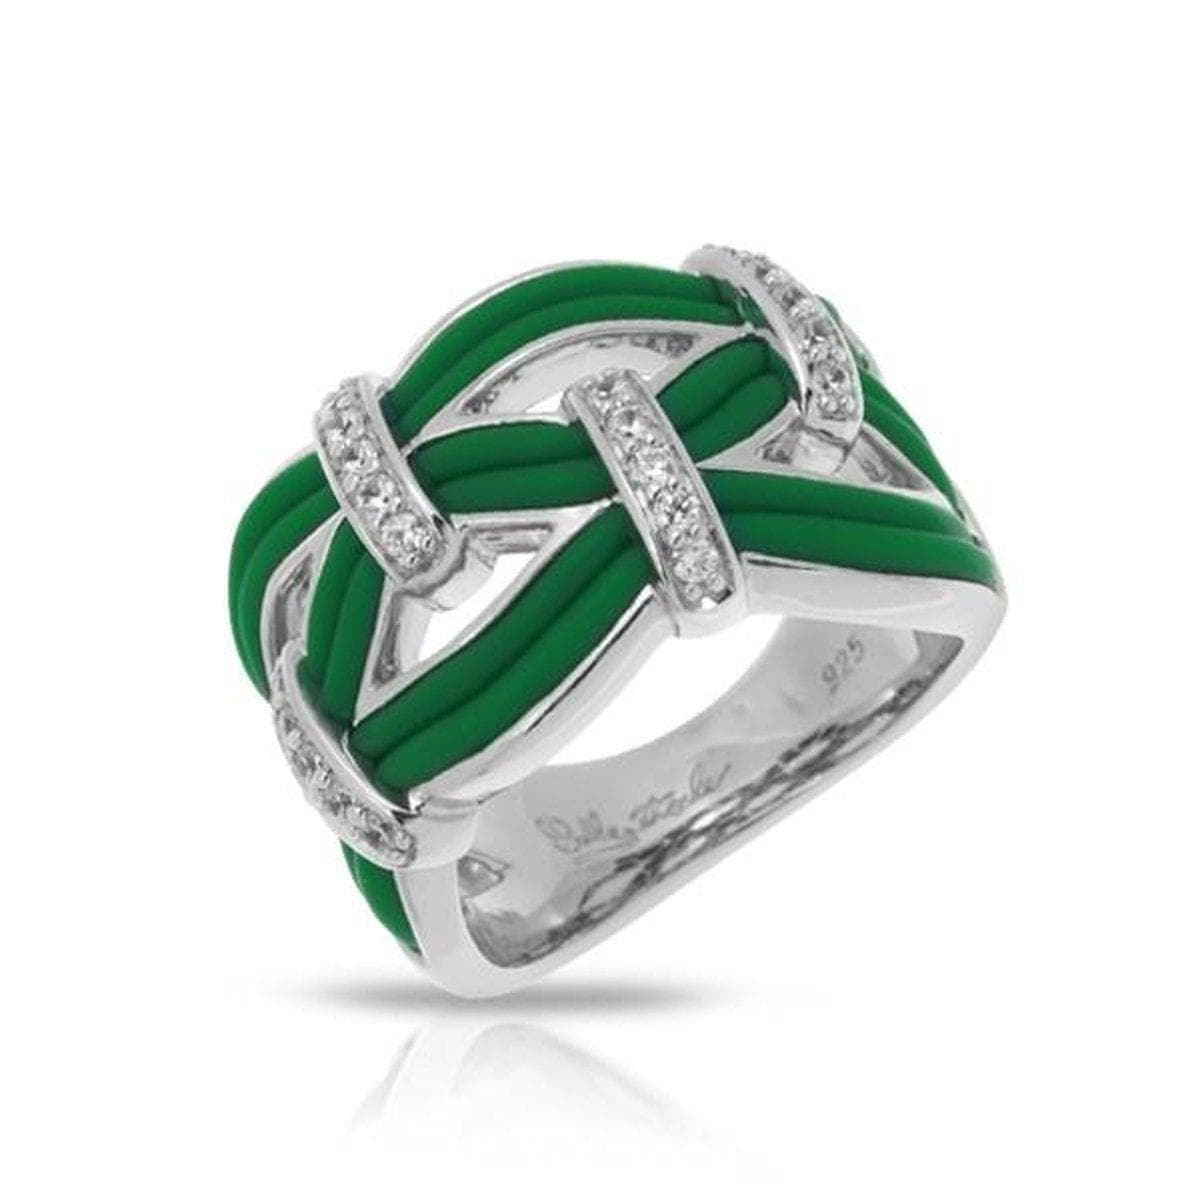 Riviera Emerald Ring-Belle Etoile-Renee Taylor Gallery